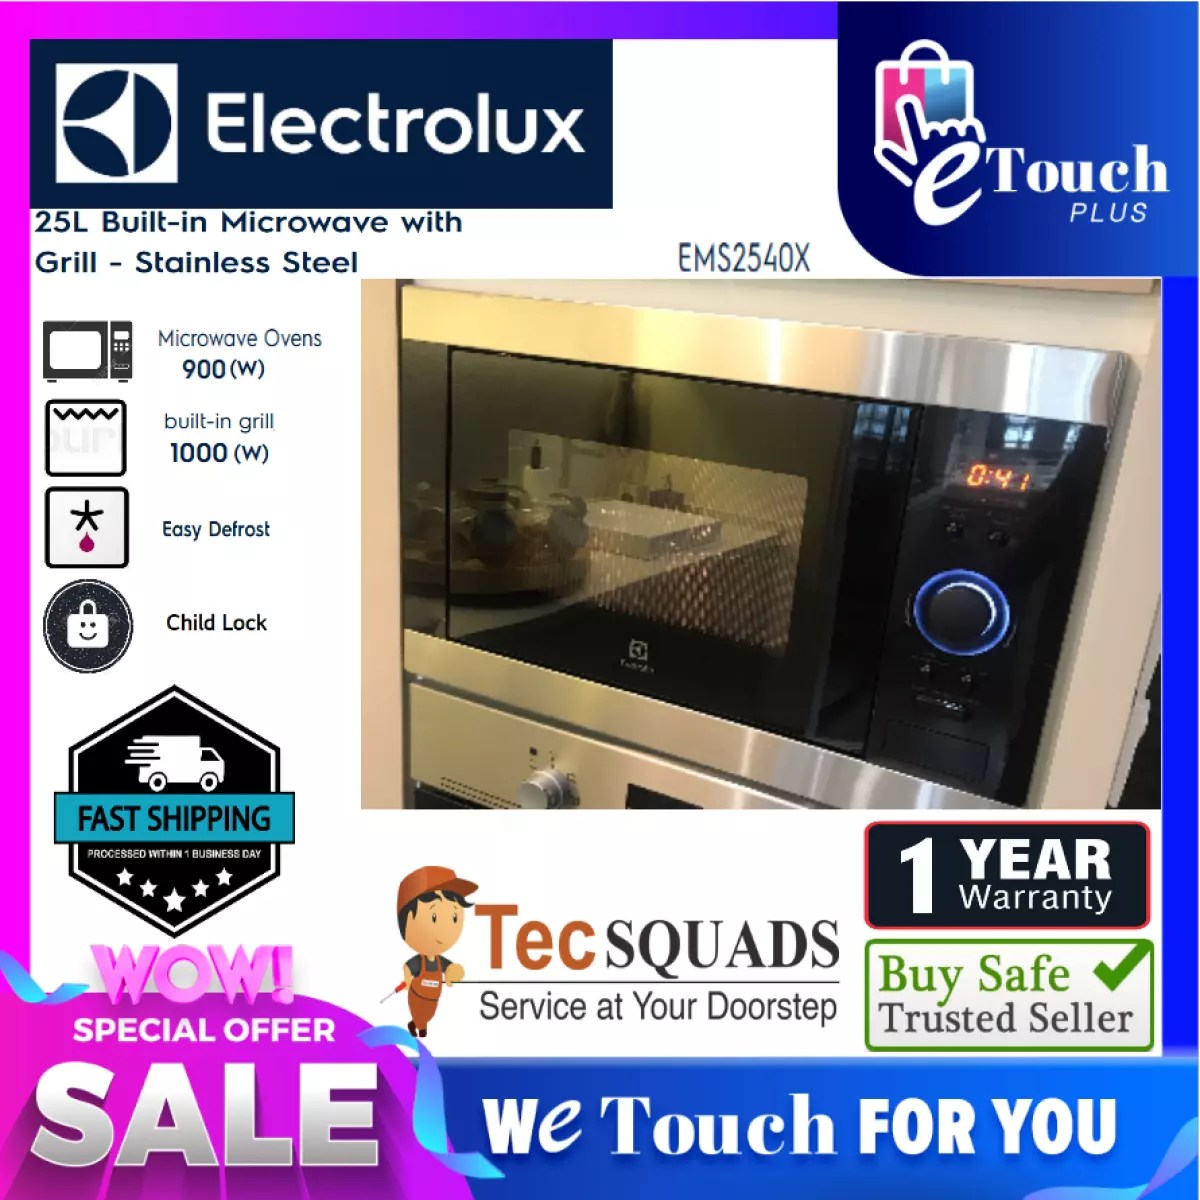 electrolux ems2540x built in microwave oven with grill 25l 900w led display